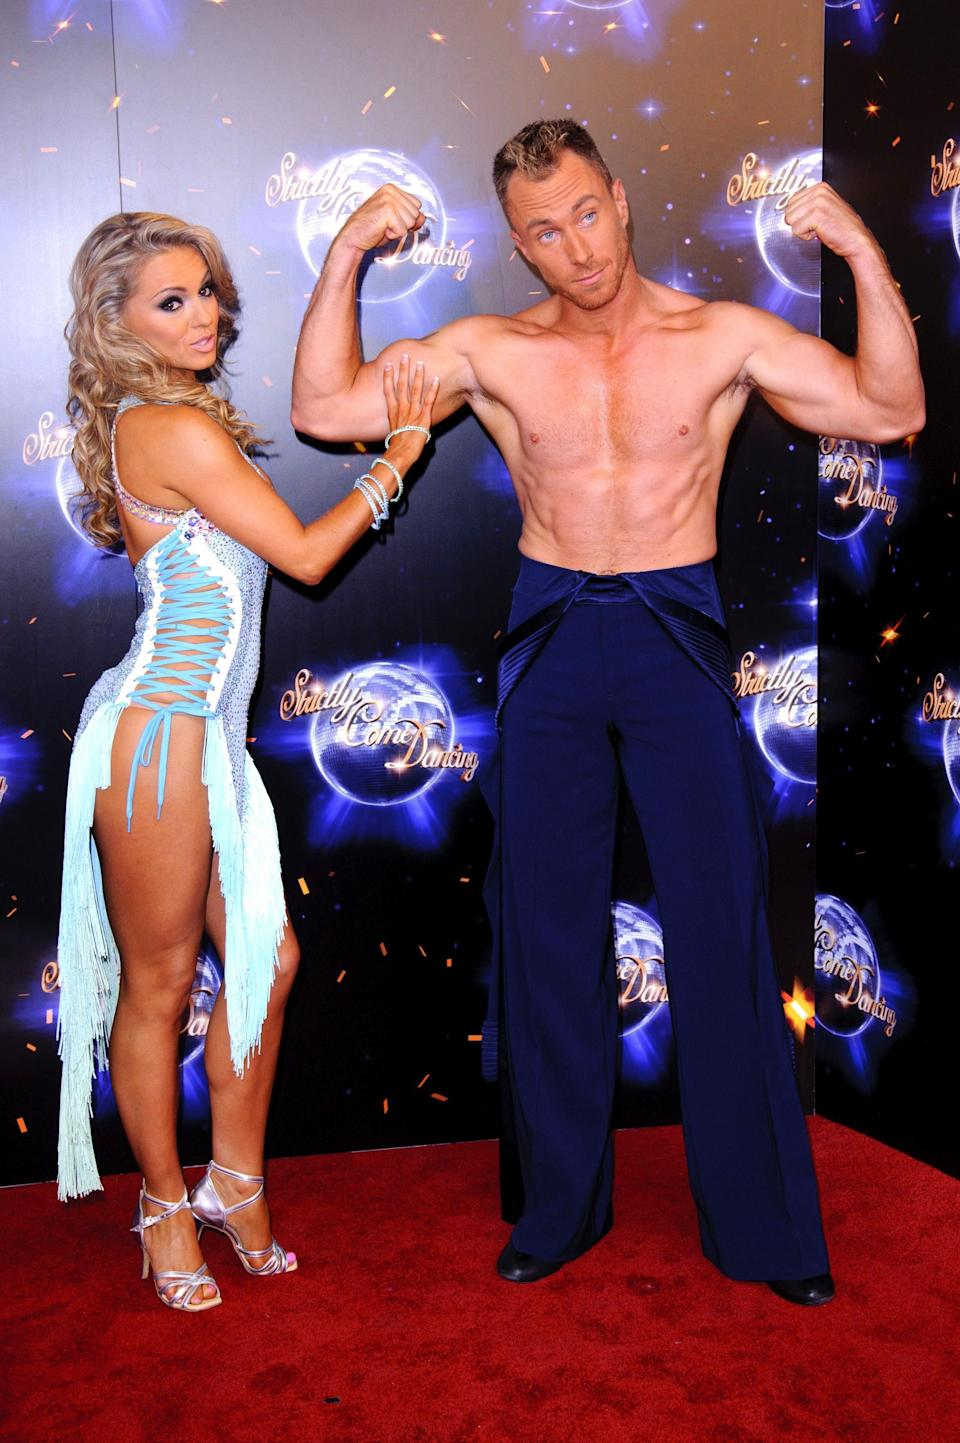 """Of course, Ola's husband James Jordan is the king of hitting out at Strictly, which he seems to do whenever the opportunity arises.<br /><br />He departed from the show in 2014, accusing bosses of firing him. When a tweet from the show said he'd be missed, he fired back simply: """"So why sackme?"""""""